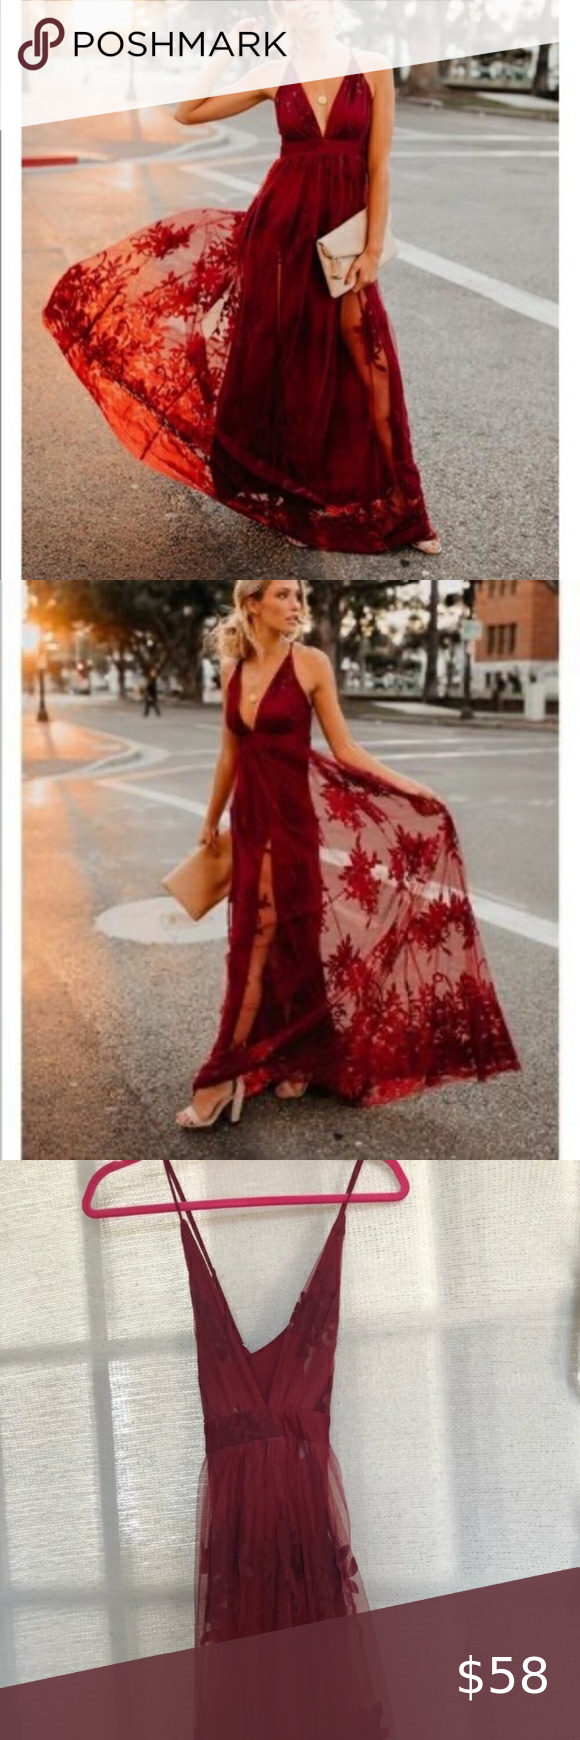 Nwt Vici Antonia Maci Dress In Wine Brand New With Tags And Never Worn Size Small The Stunning Velvet Floral Burnout Low Vici Dress Dresses Clothes Design [ 1740 x 580 Pixel ]